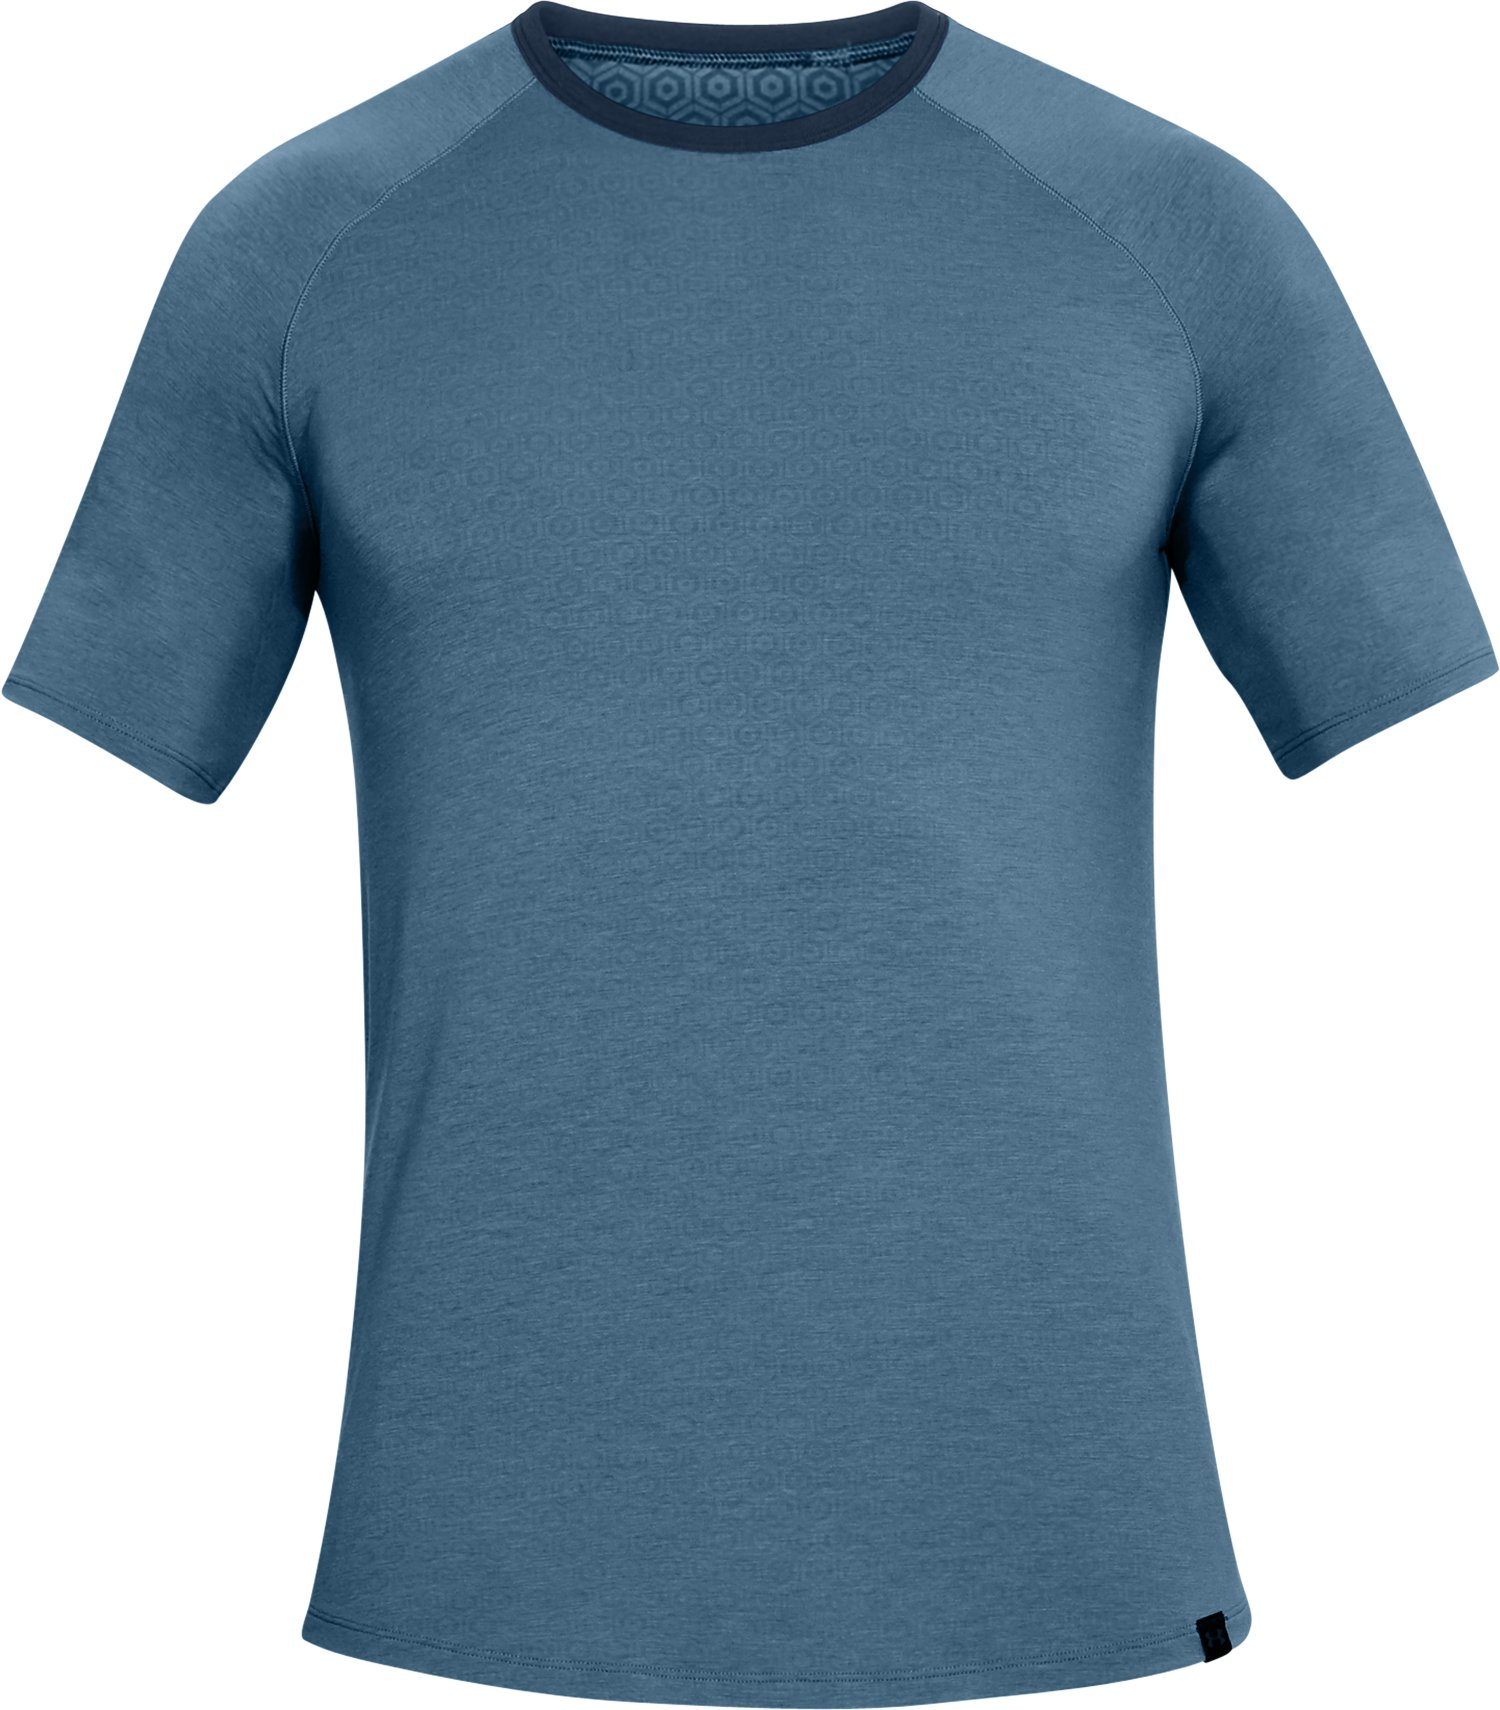 Men's Athlete Recovery Sleepwear Crew, BASS BLUE,